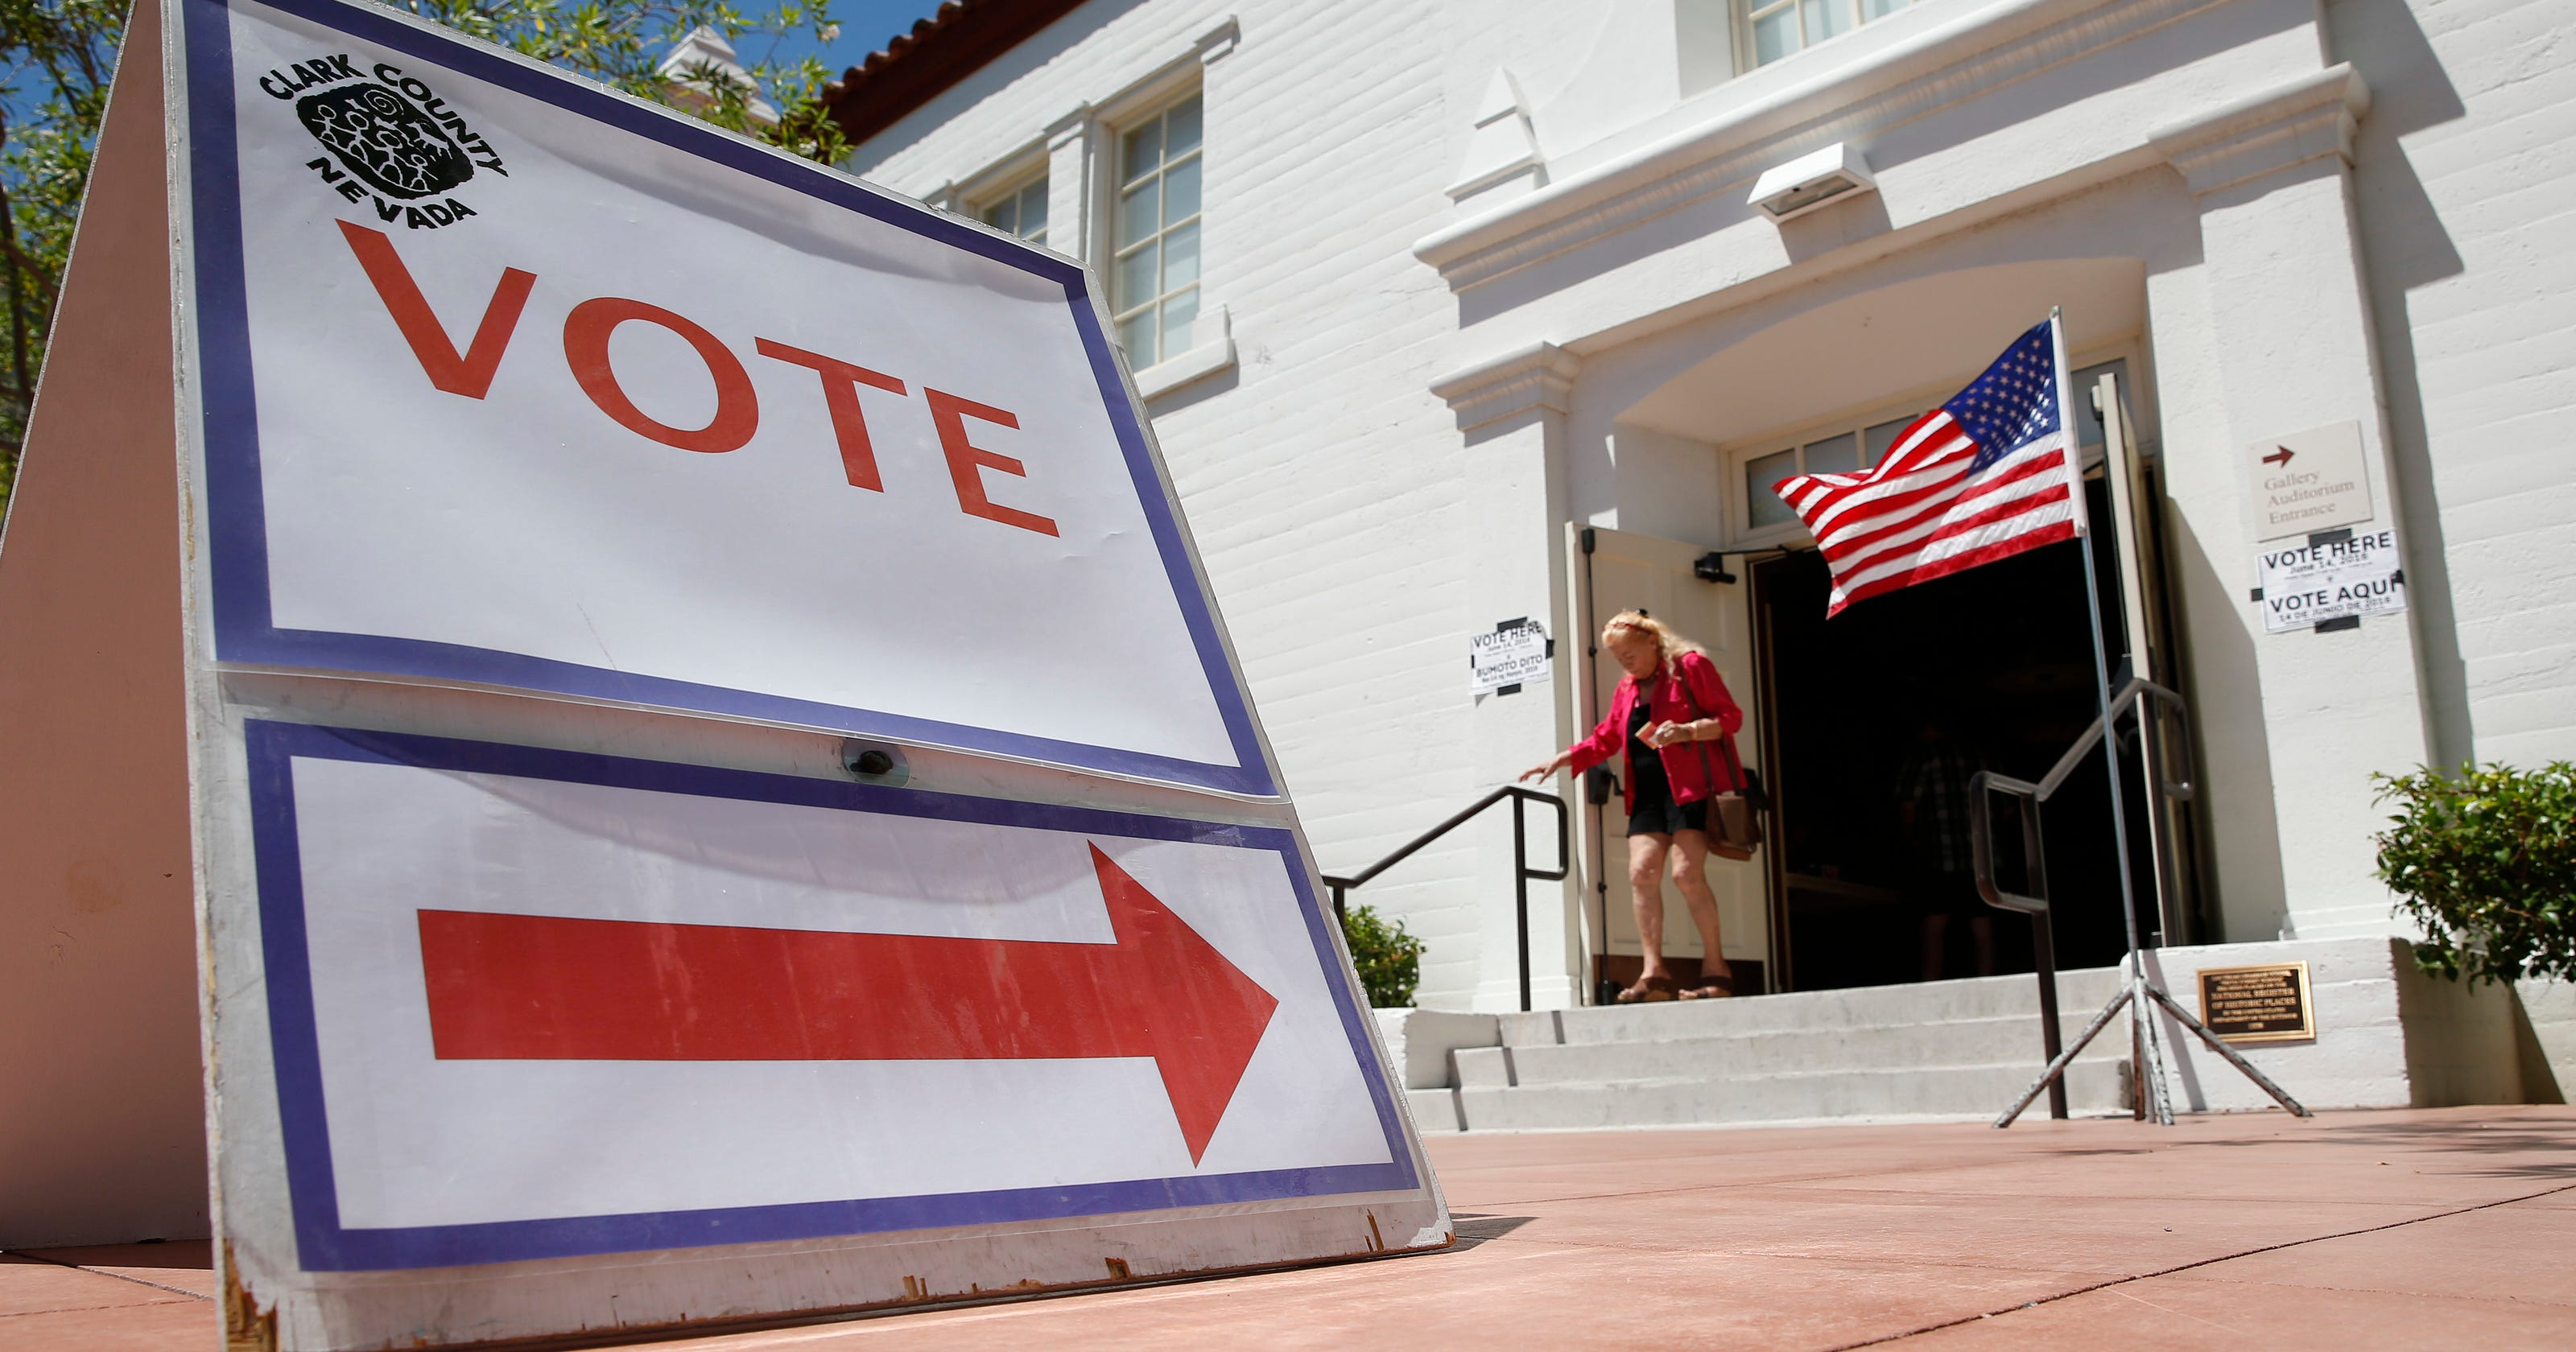 New voting method allows people to rank candidates on ballot